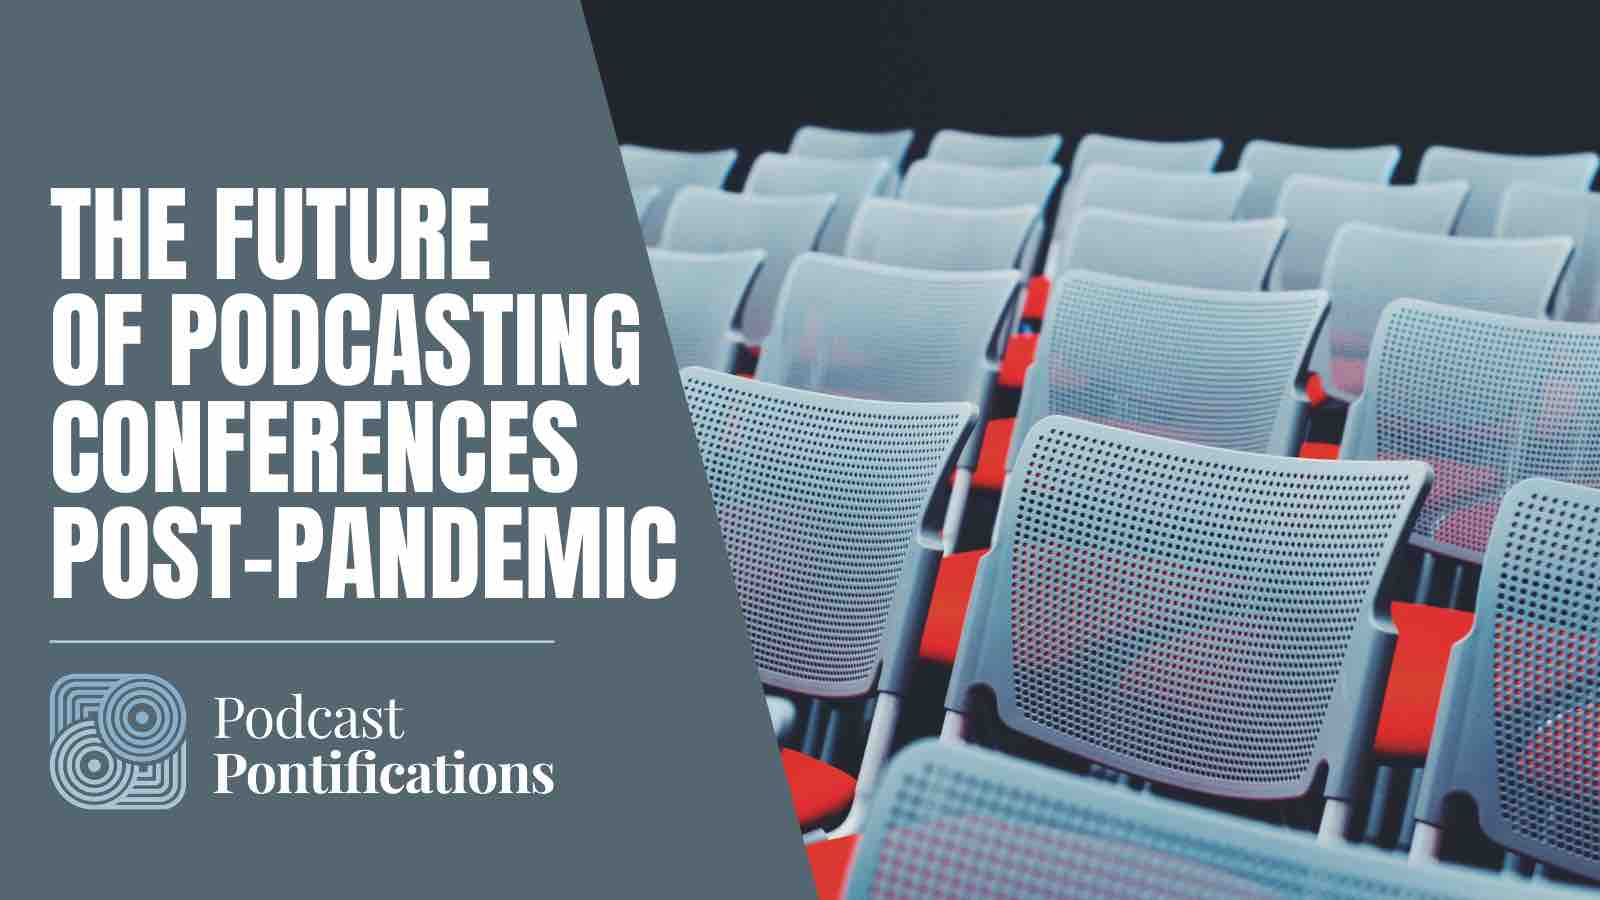 The Future of Podcasting Conferences Post-Pandemic